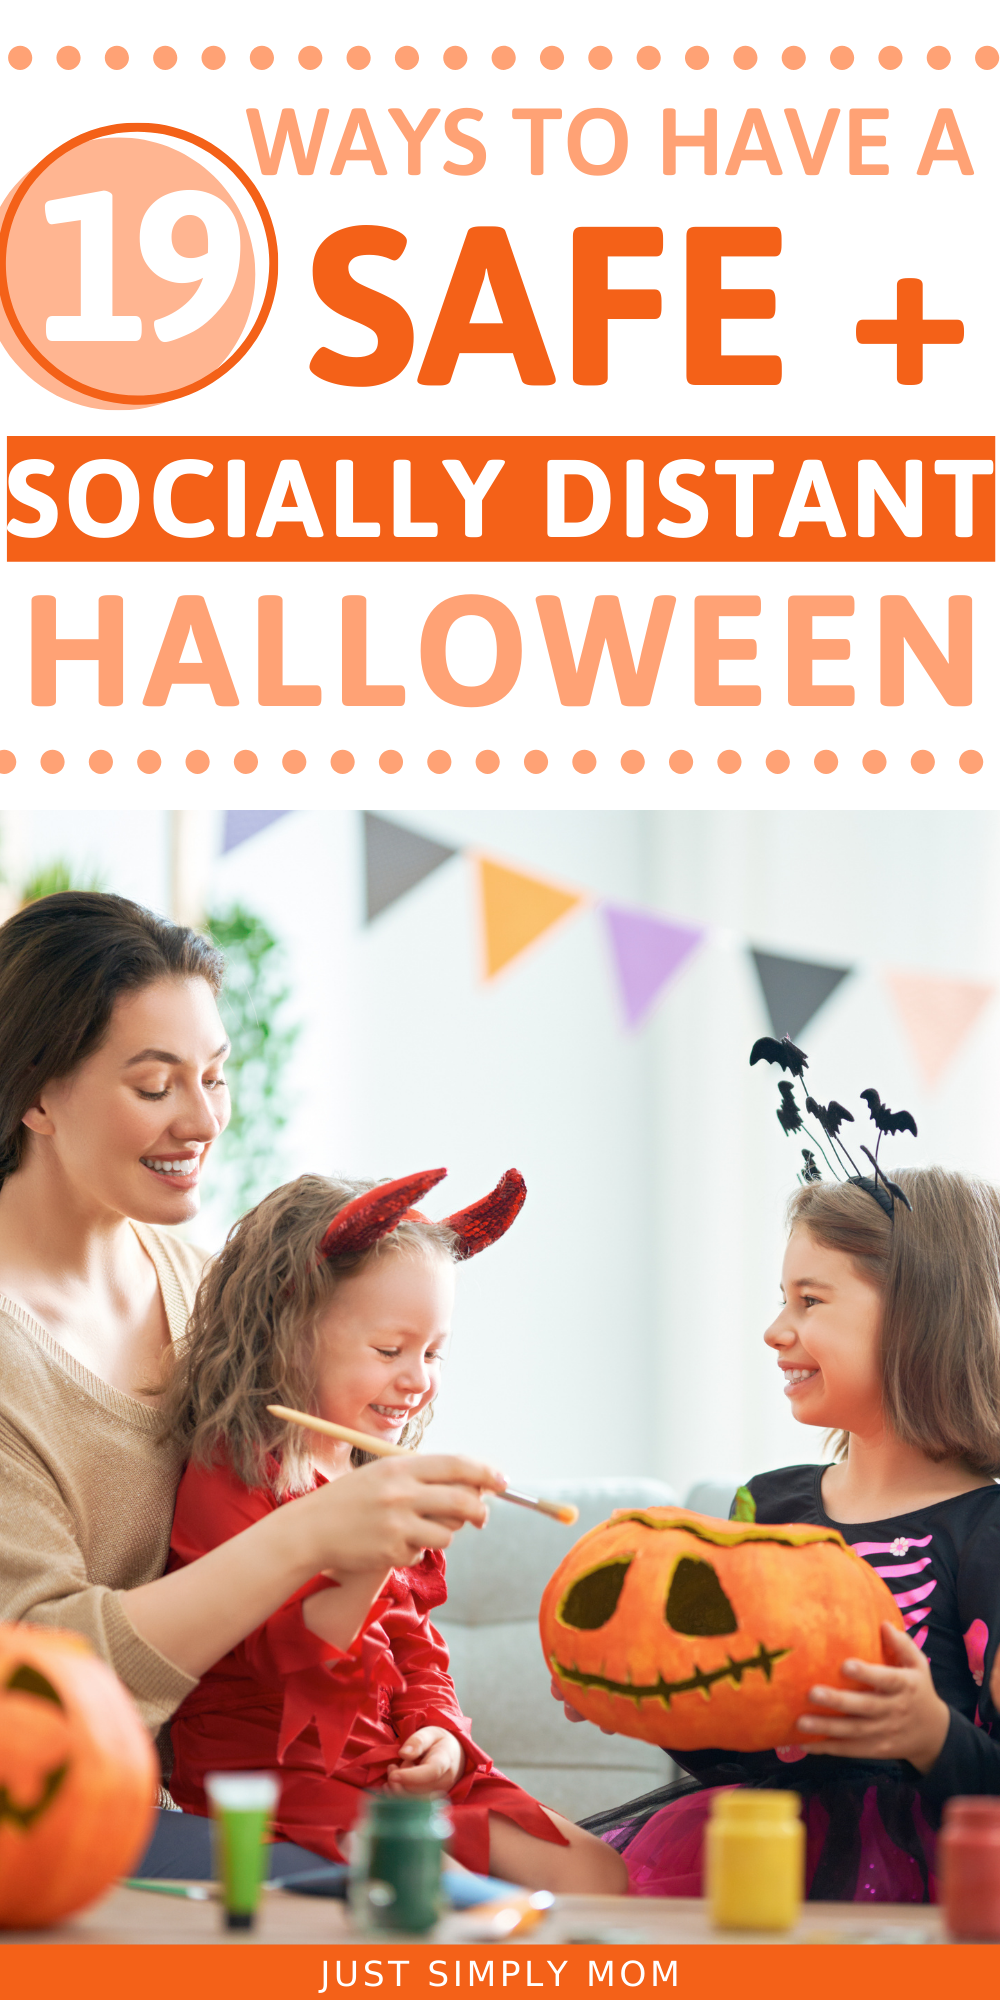 19 Ways to Have a Safe and Socially Distant Halloween in